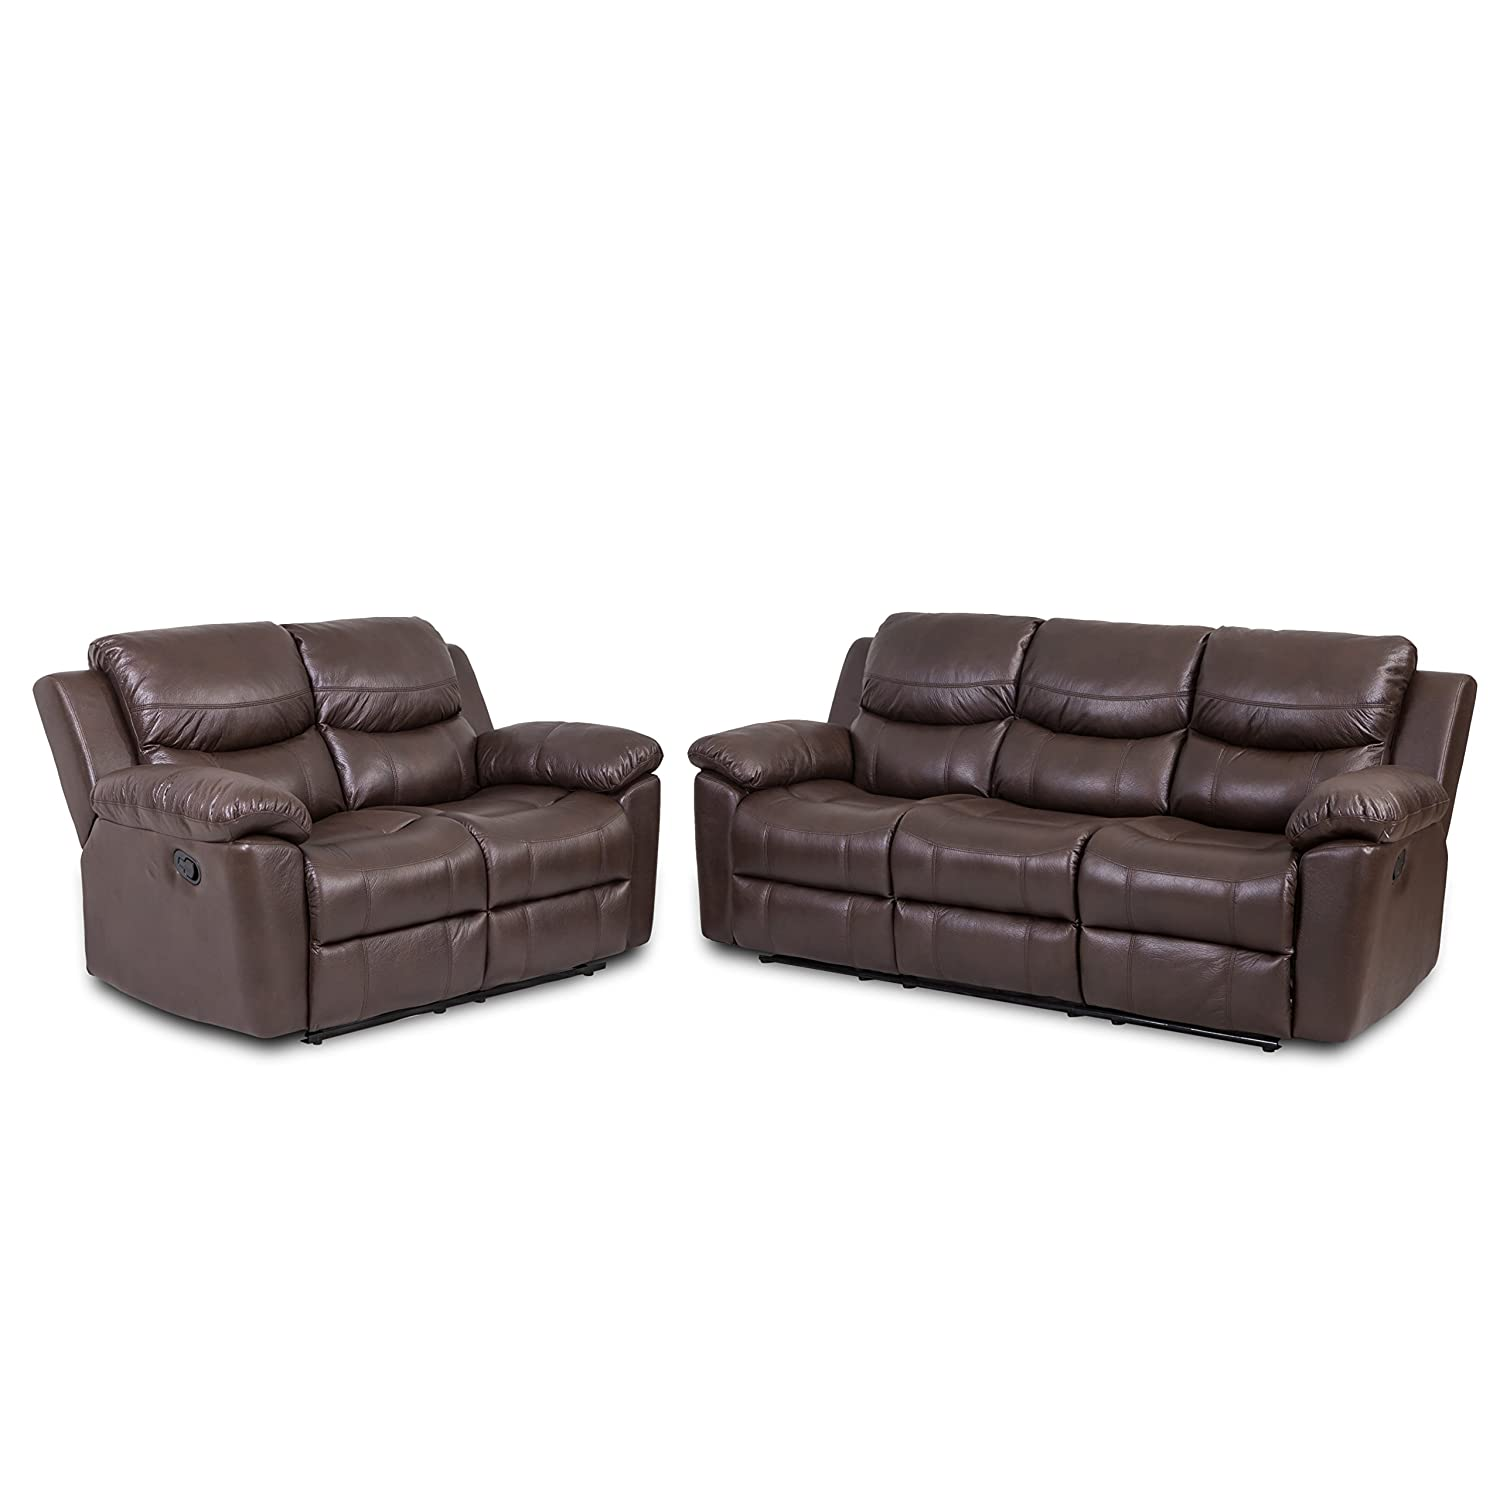 Amazon com juntoso 2 pieces recliner sofa chair sets bonded leather living room lounge loveseat reclining couch chocolate kitchen dining